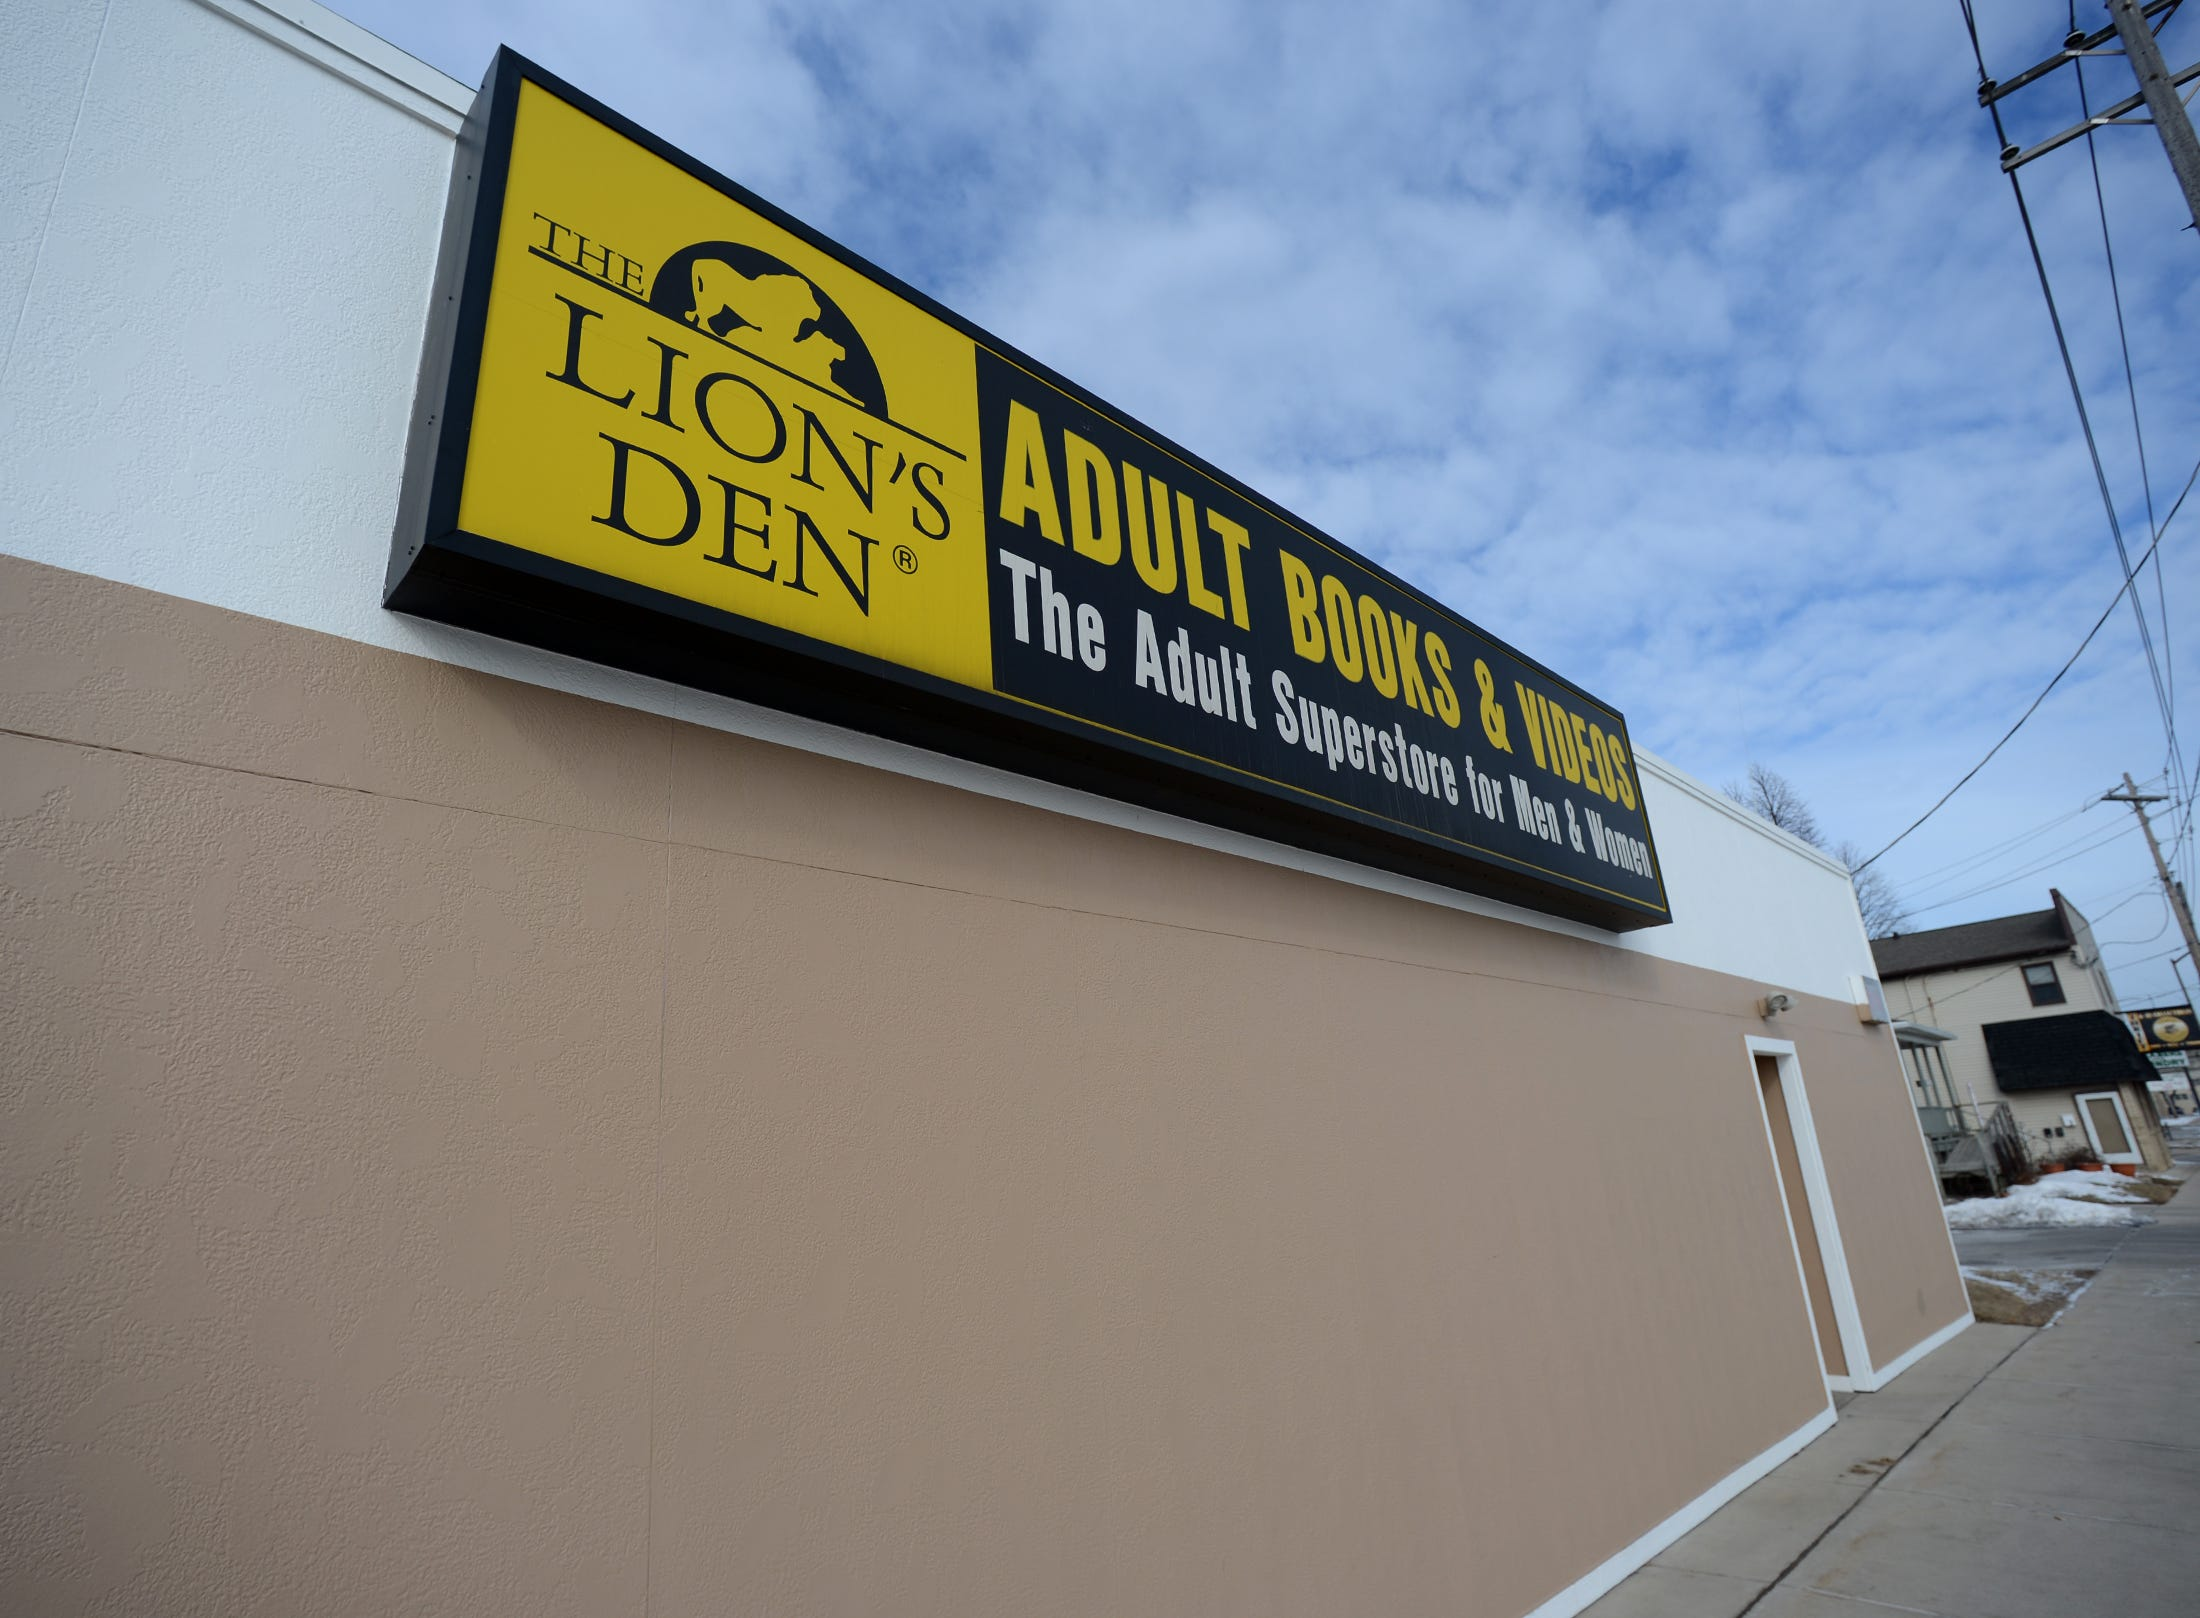 Adult den lion store wisconsin